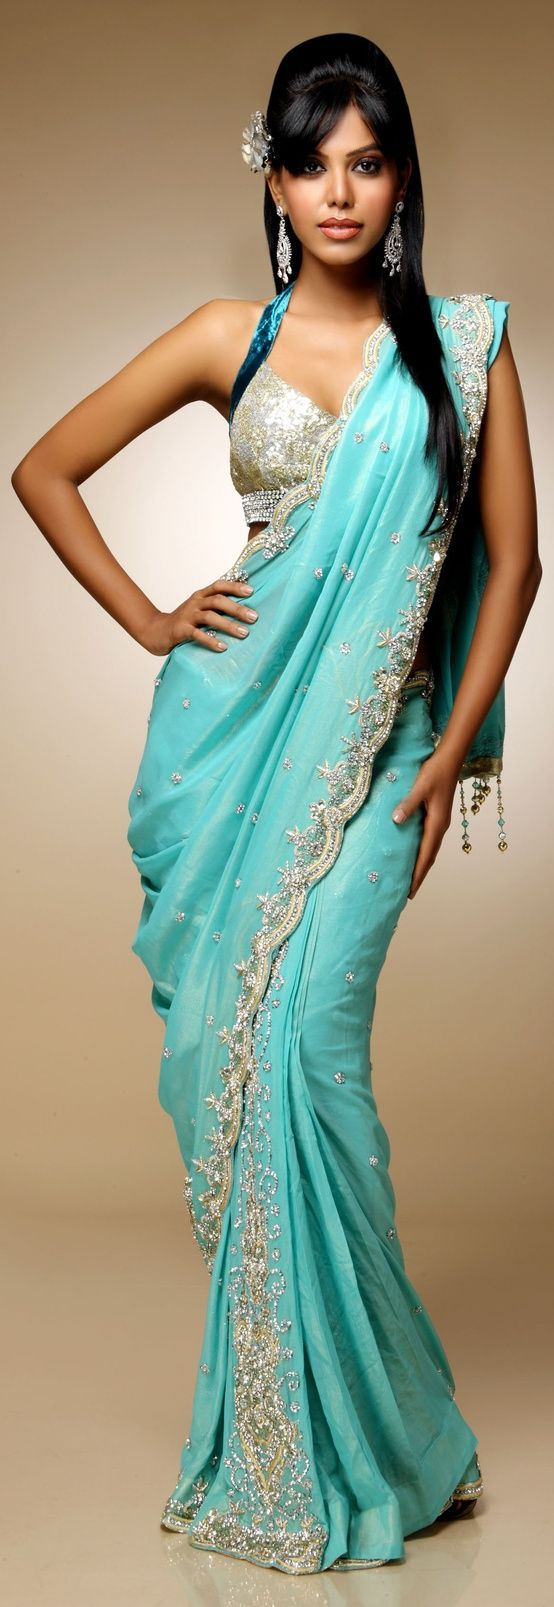 Saree blouse Bollywood Fashion - http://www.kangabulletin.com/online-shopping-in-australia